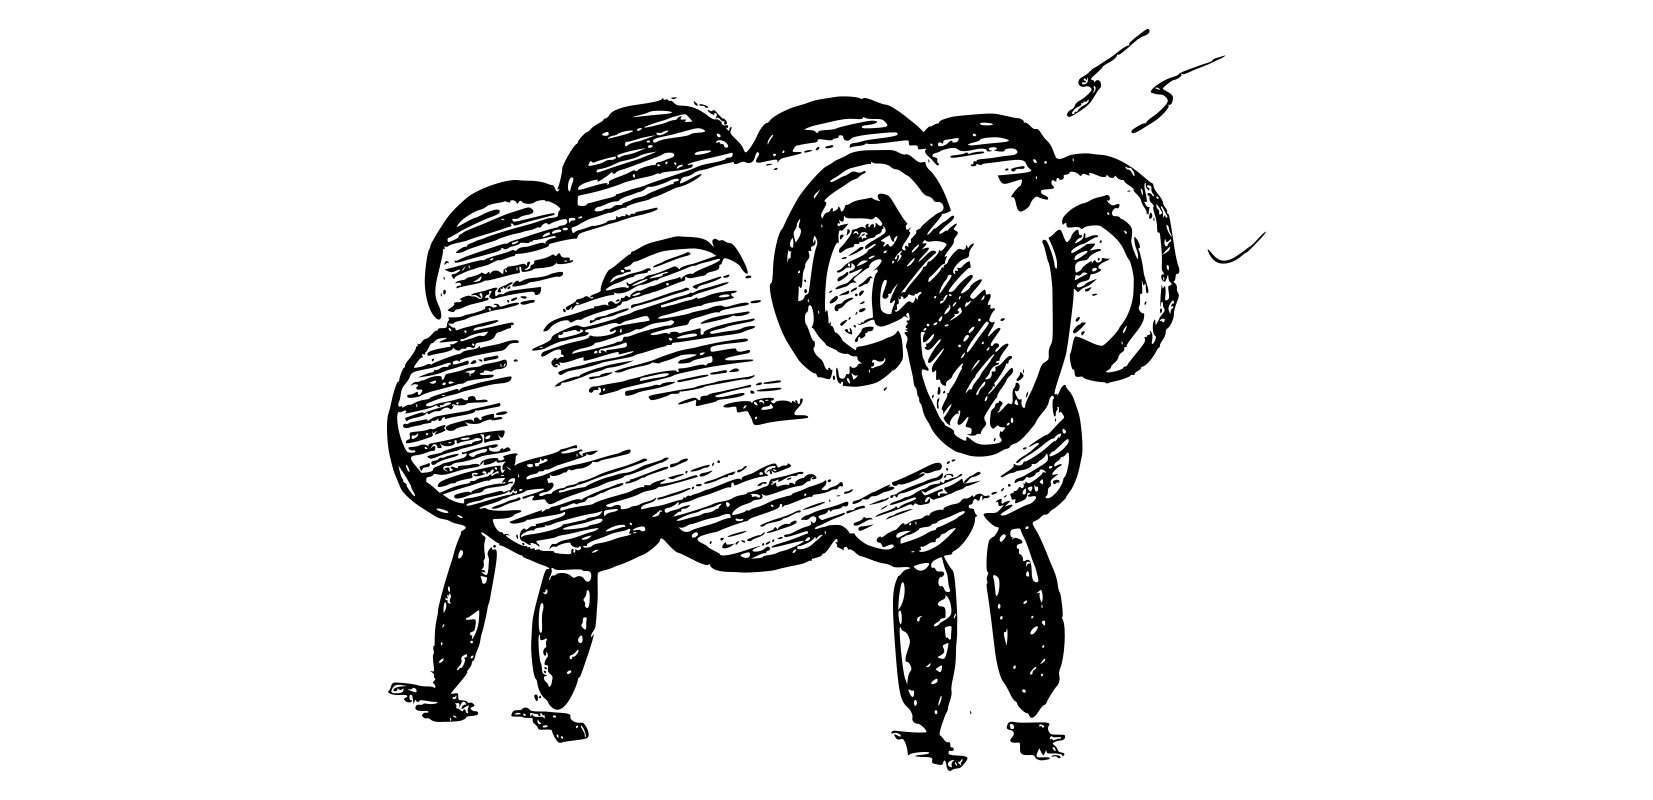 Presenting BlackSheep, one of today's fastest web frameworks